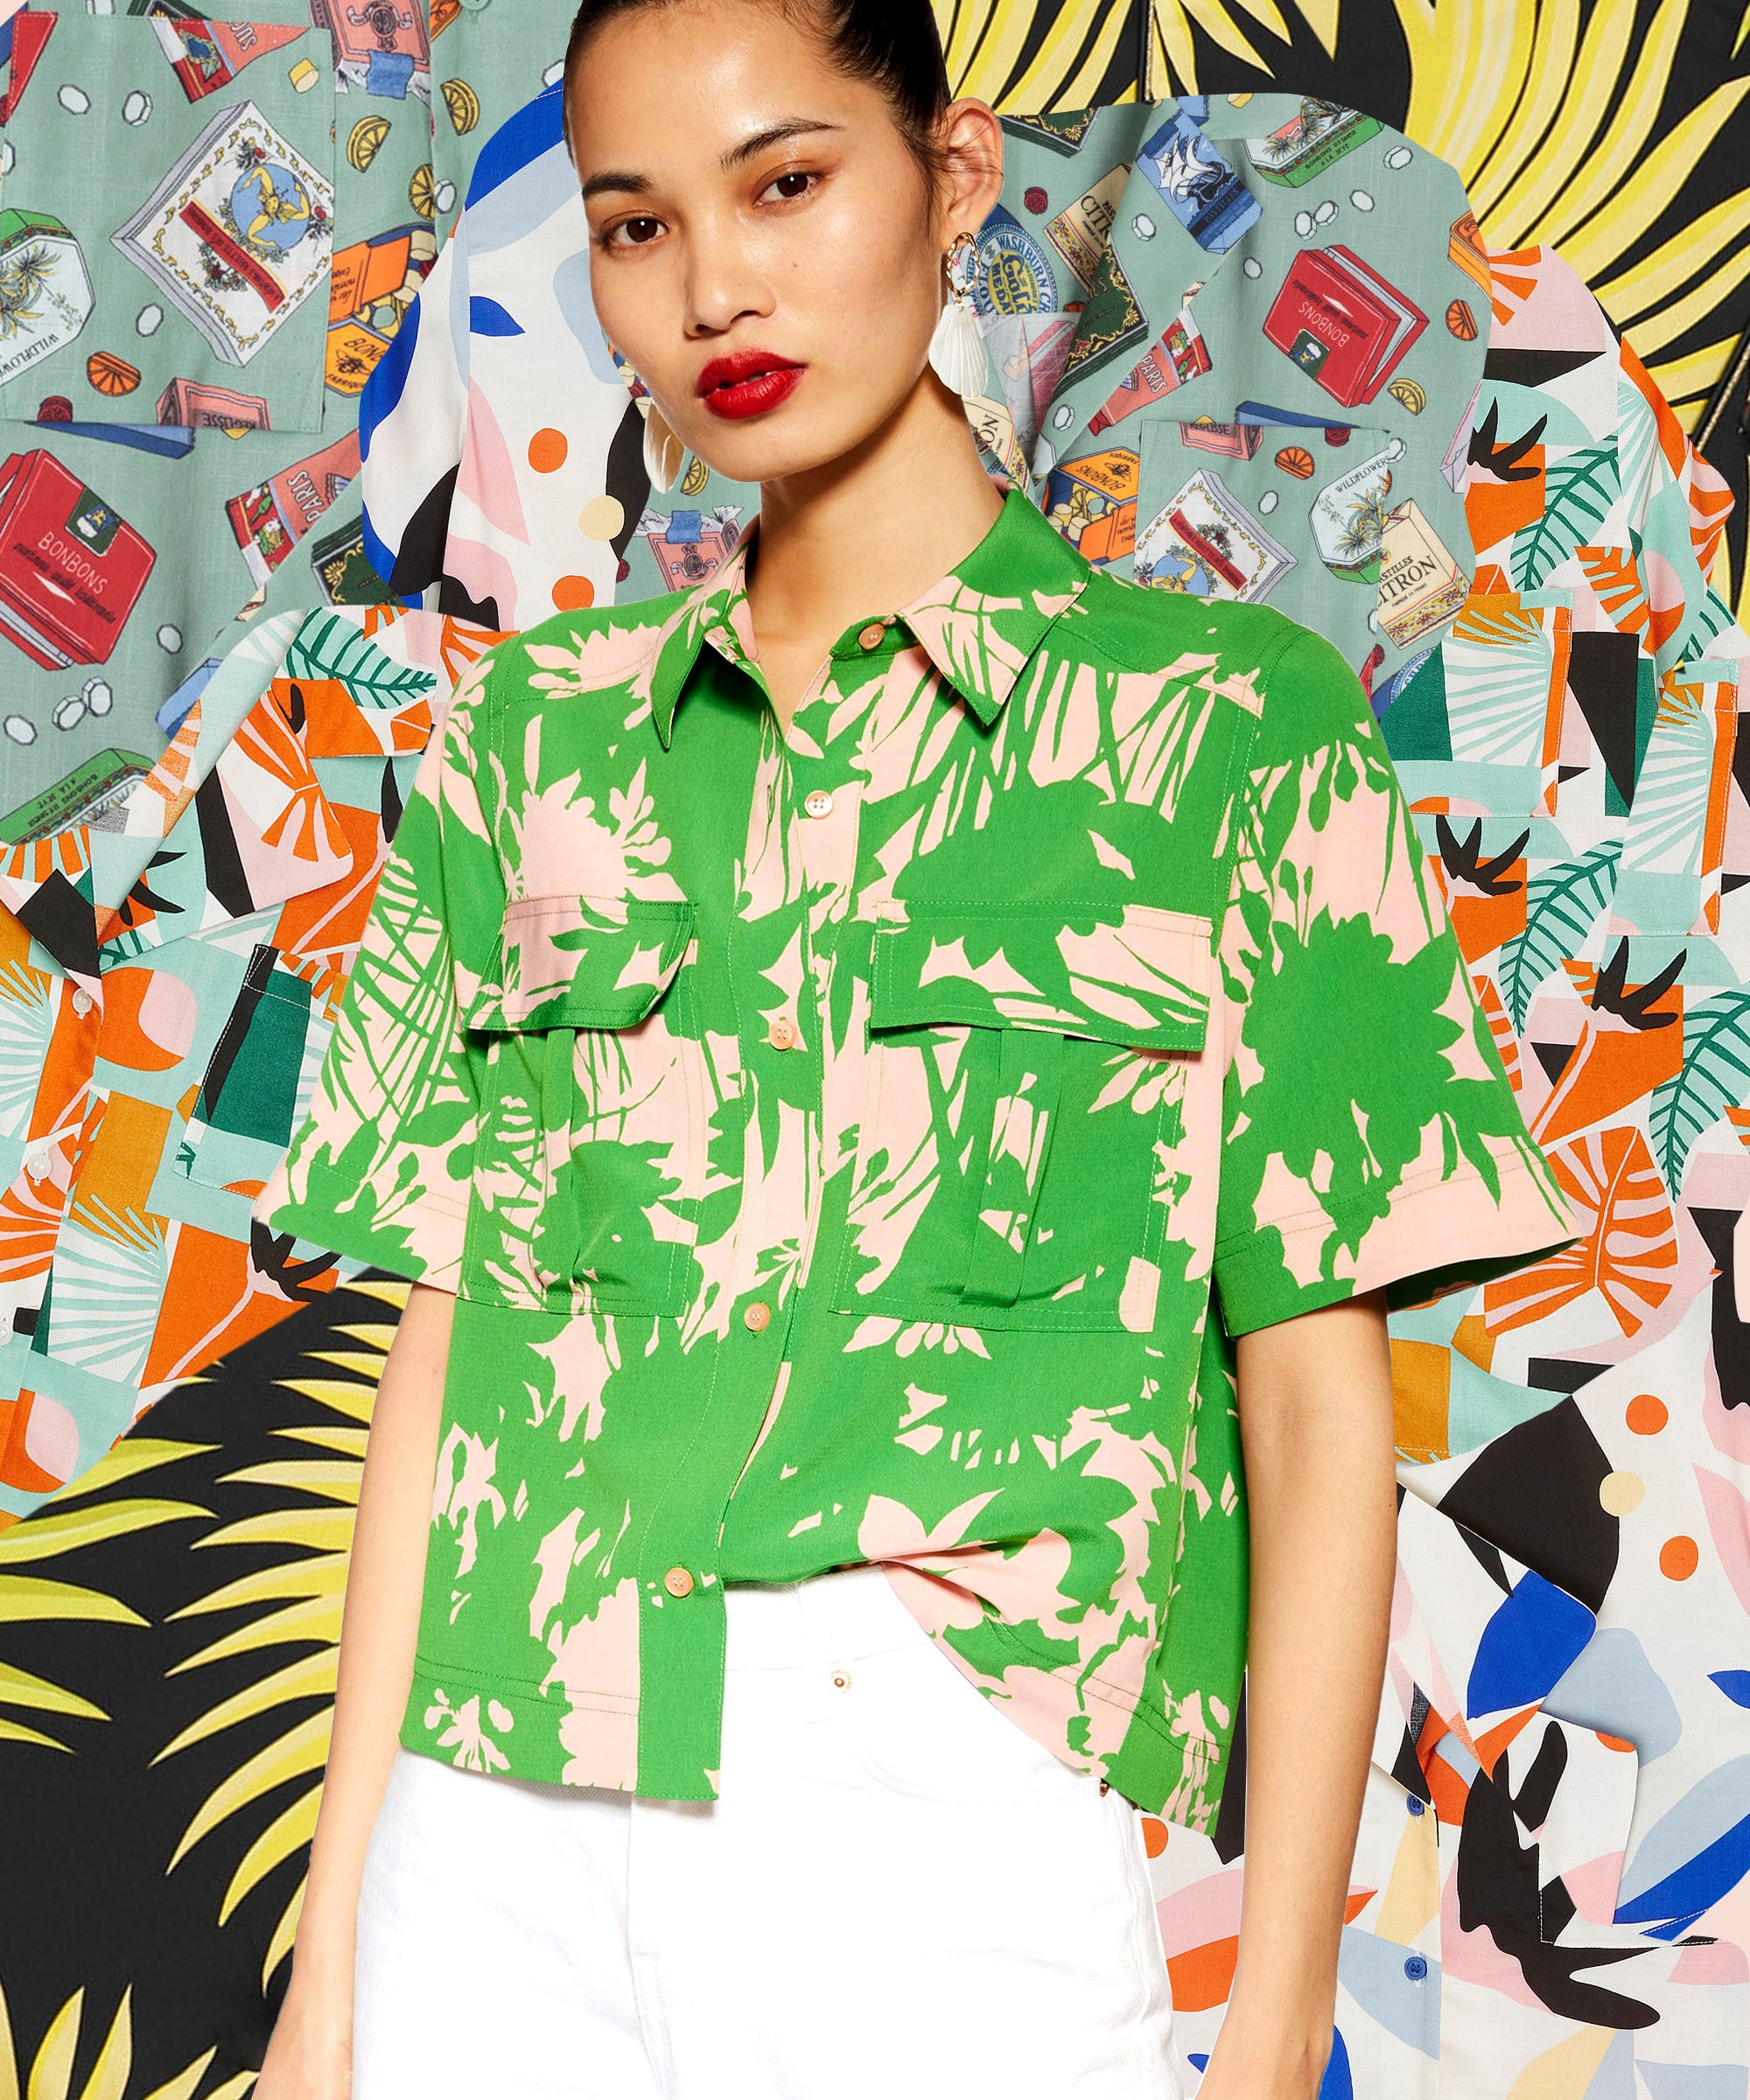 The Bowling Shirt Is Summer's Coolest (& Most Unexpected) Staple